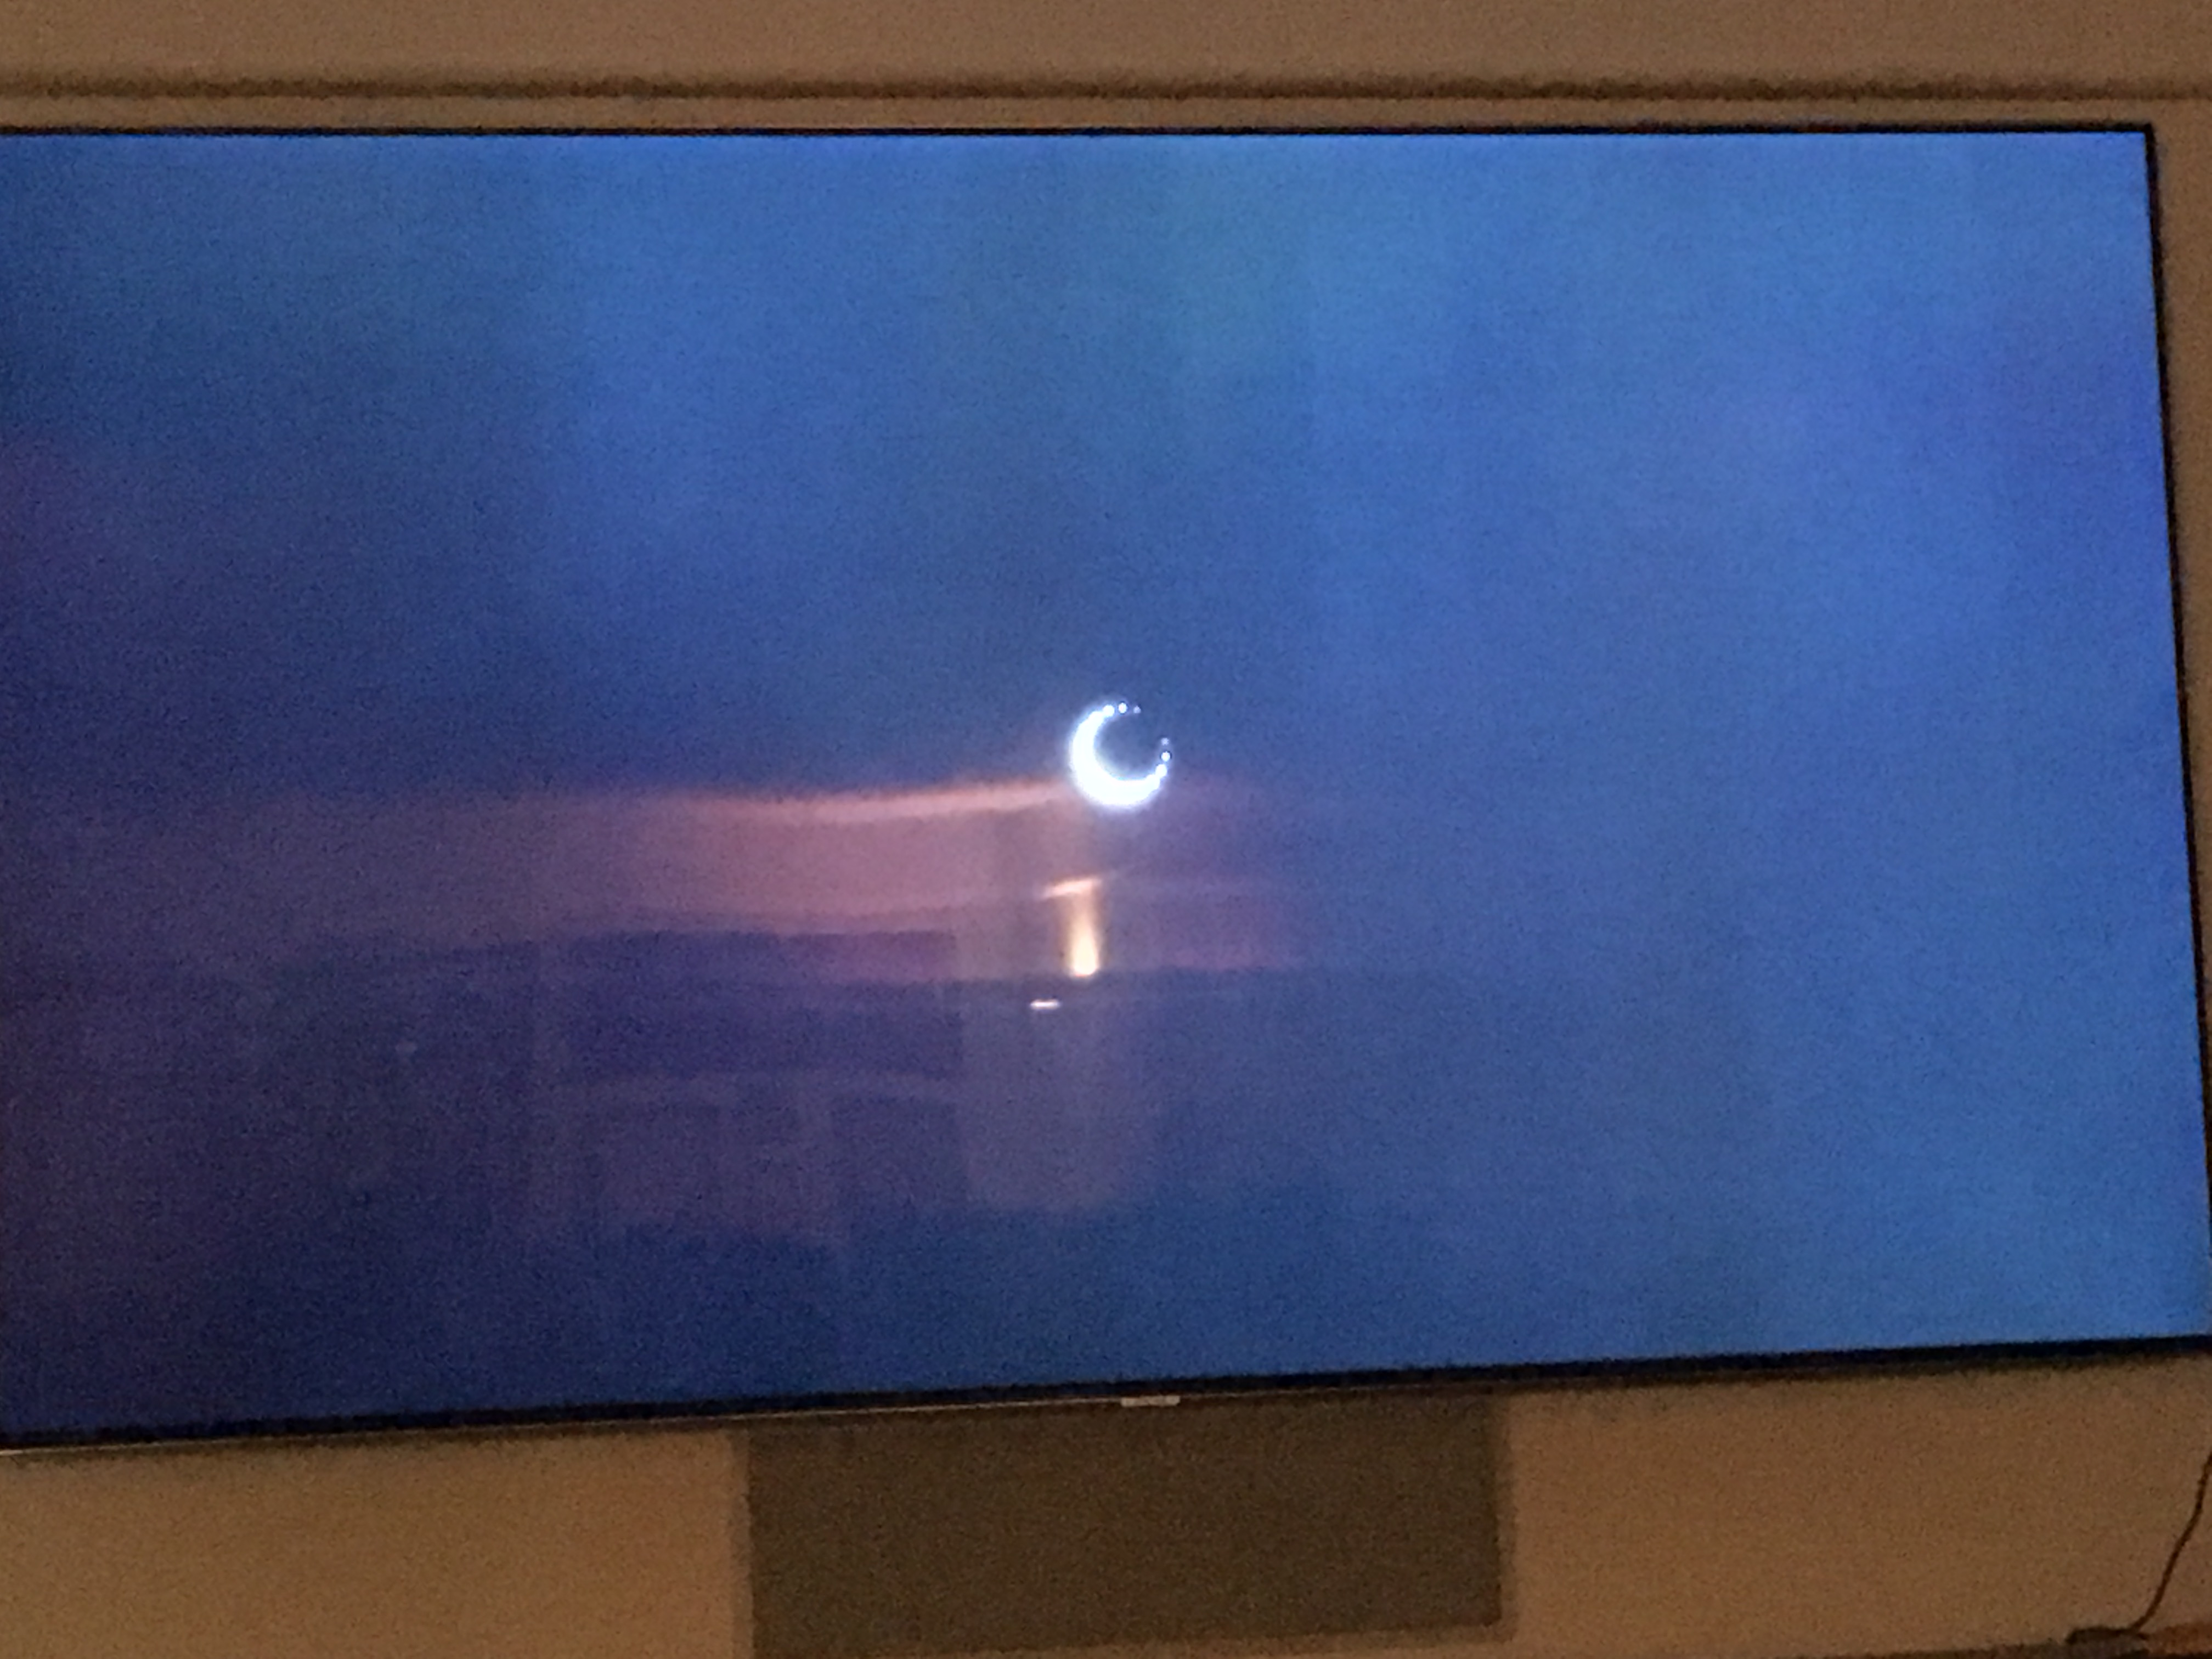 Samsung Led Tv Problems Horizontal Lines On Screen